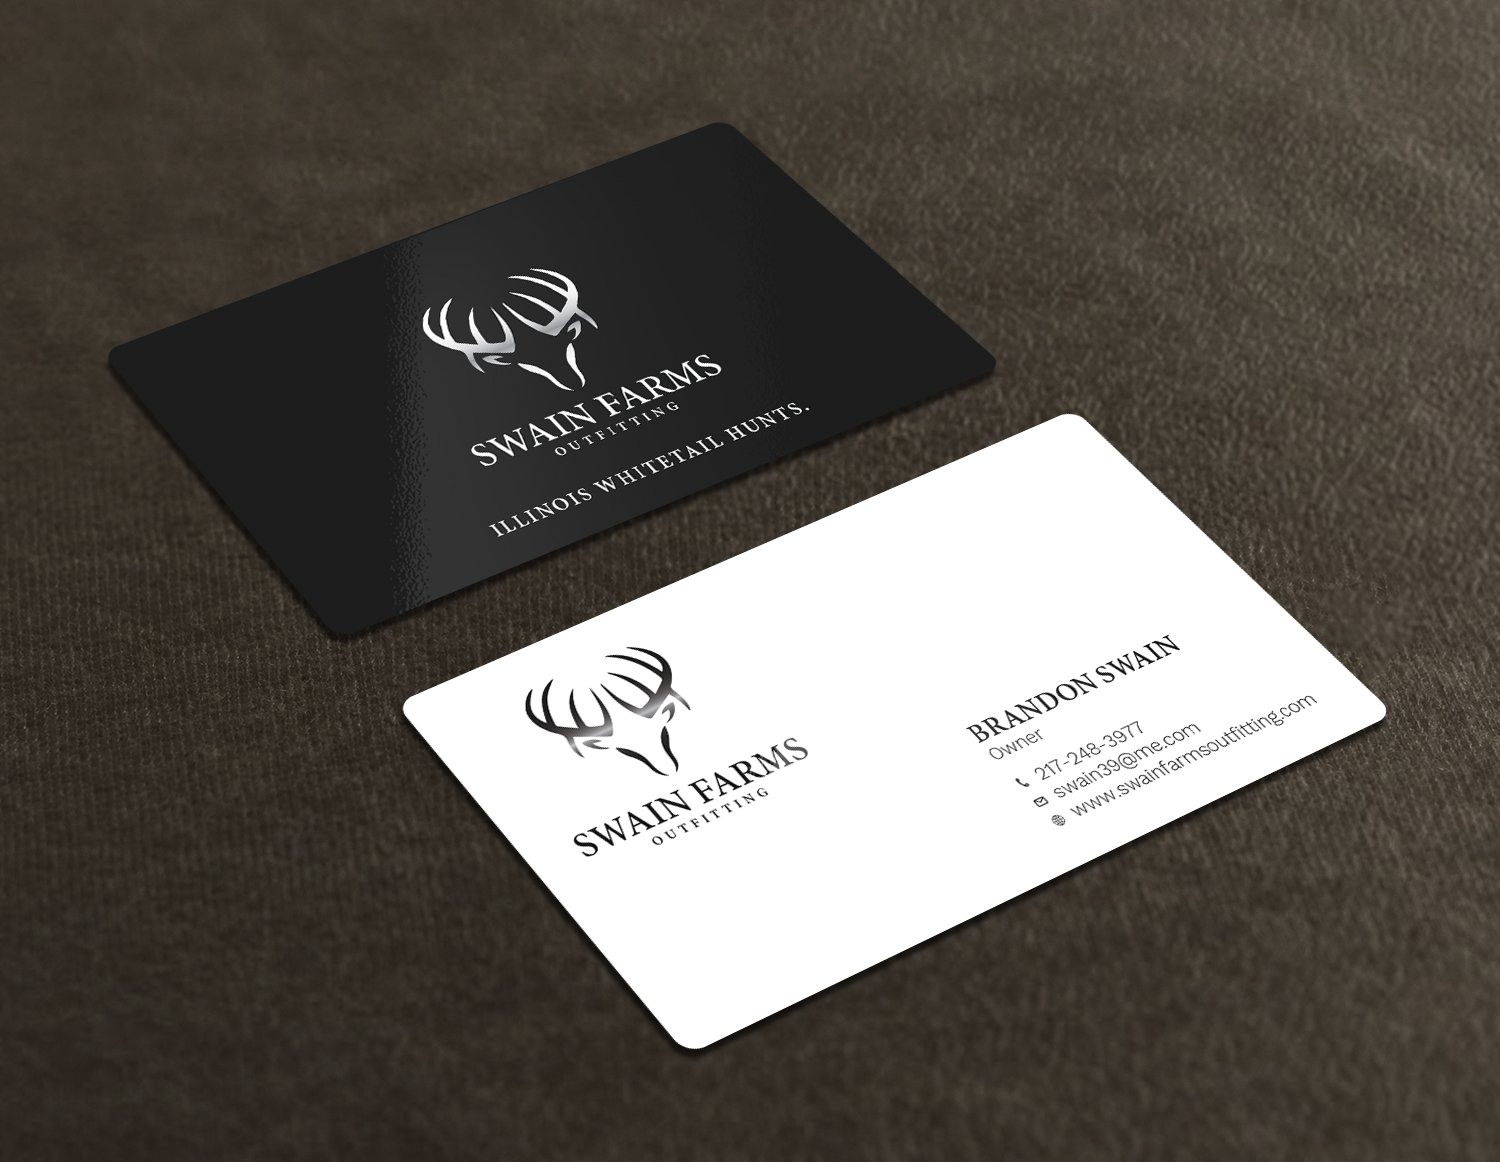 Modern professional hunting business card design for a company by business card design by avanger000 for this project design 17461174 colourmoves